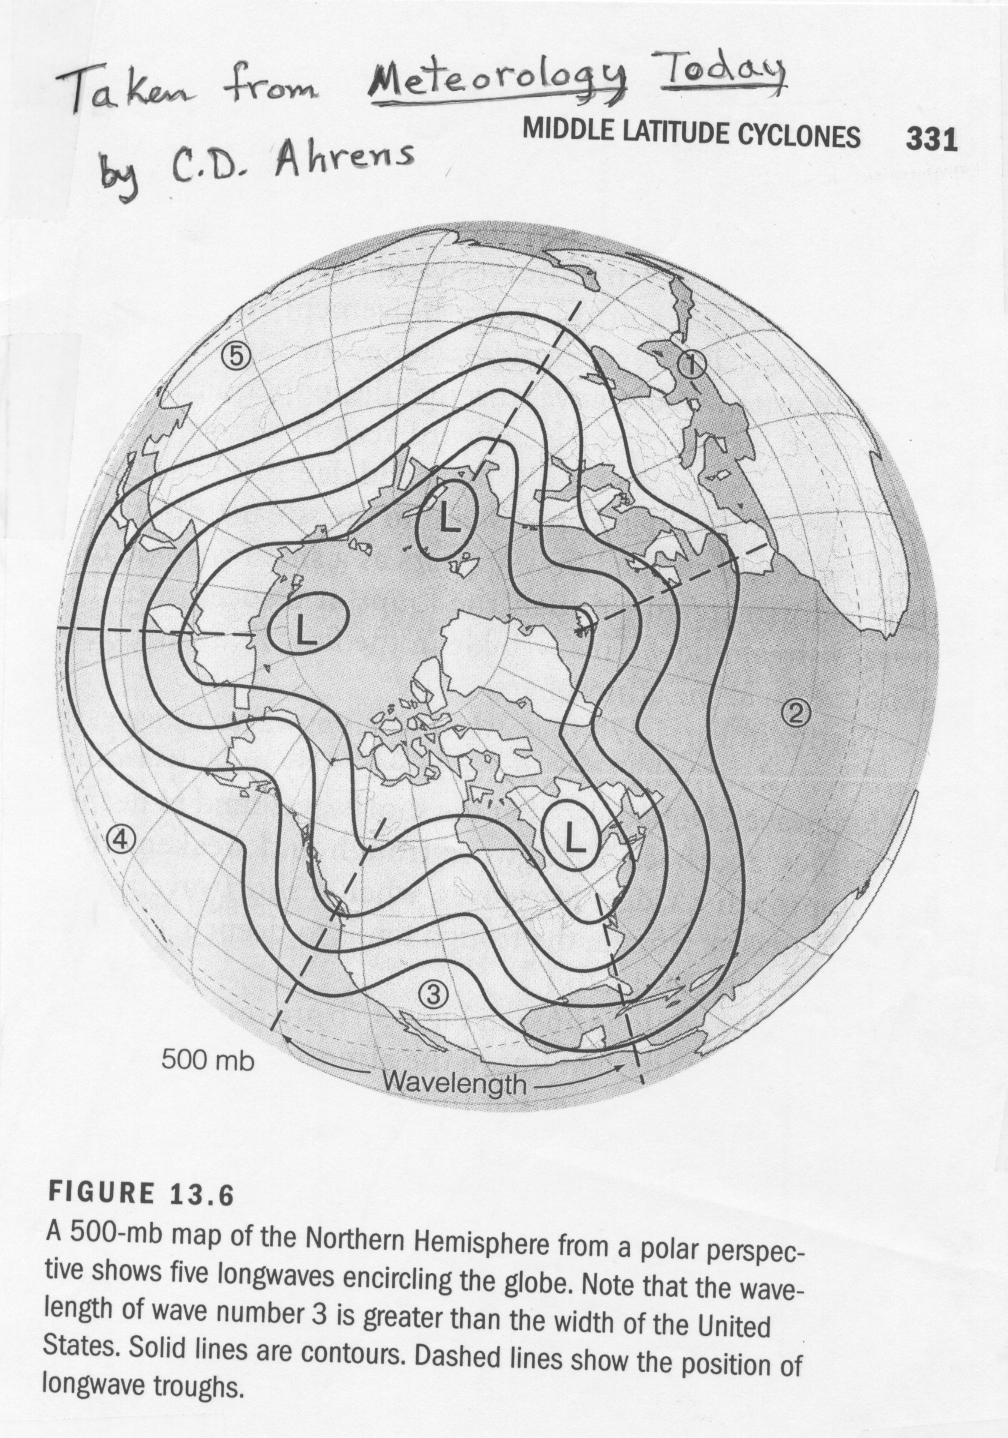 First Recall That The Height Of The 500 Mb Surface Is Related To The Density Averaged Temperature Of The Atmosphere Below 500 Mb The Higher The